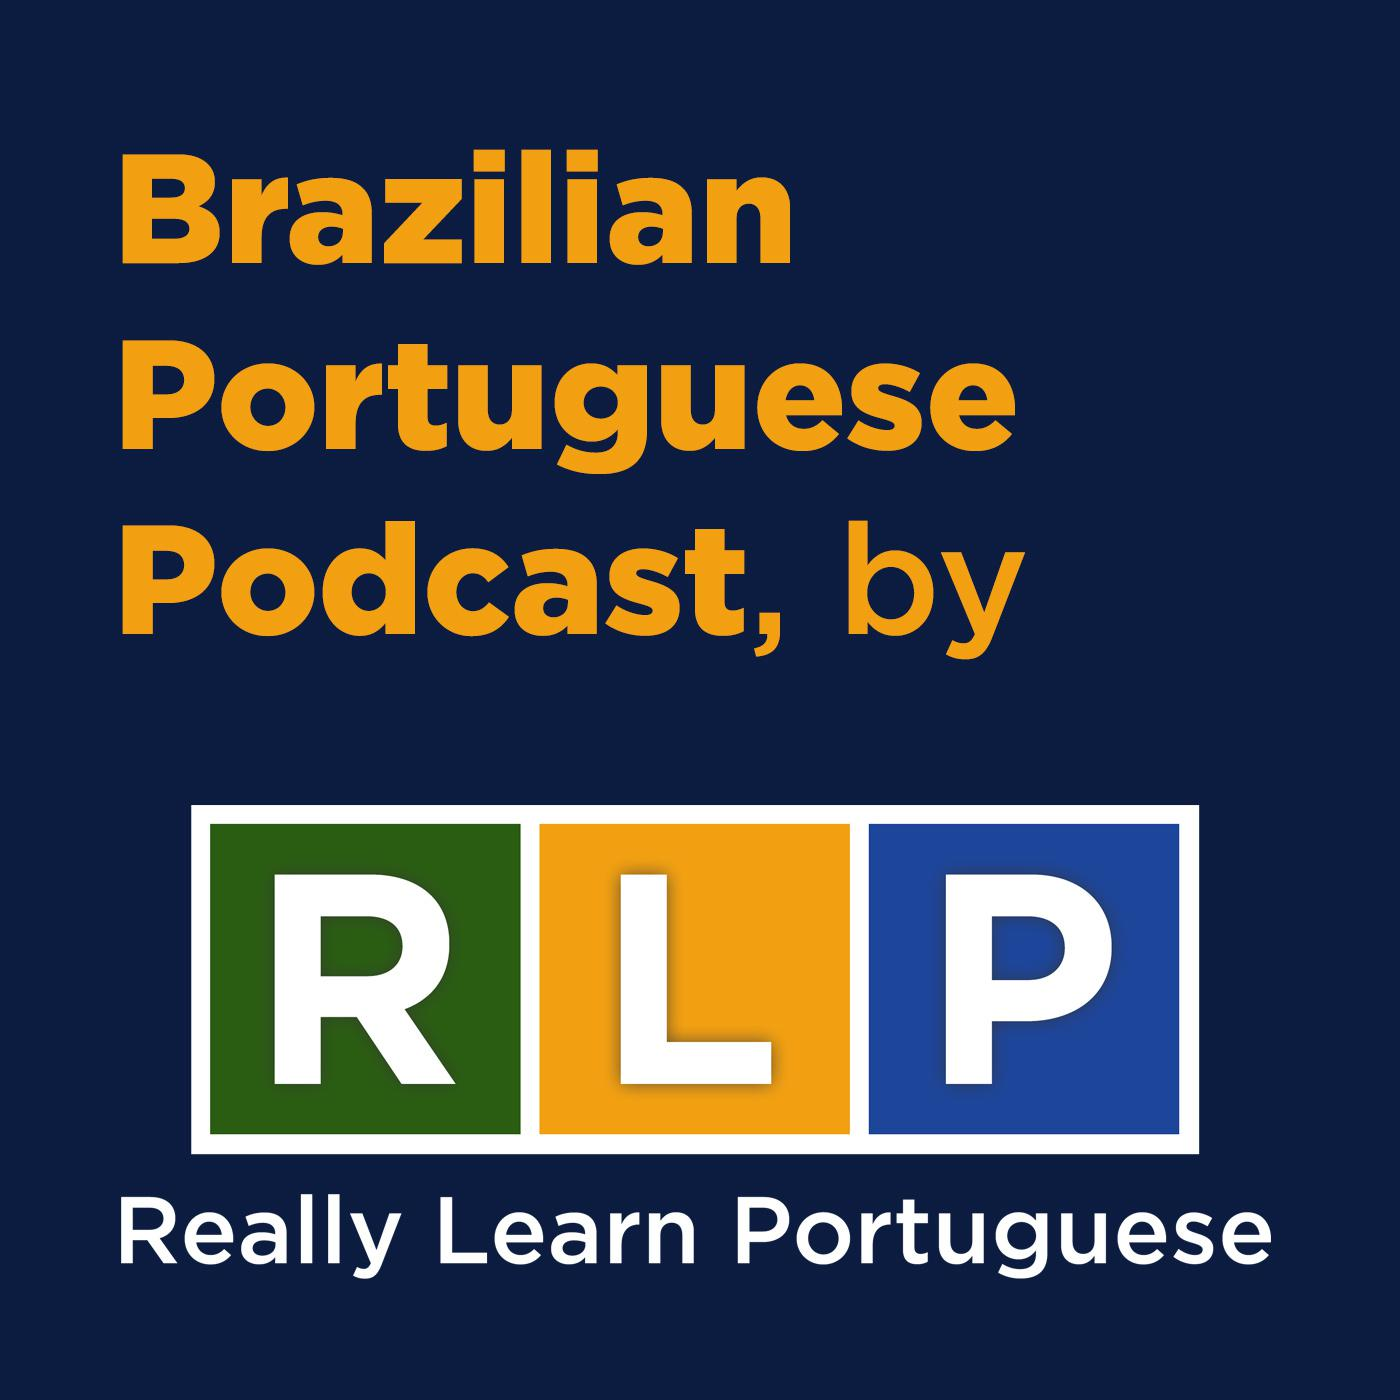 How To Improve Your Portuguese Speaking Skills In 8 Steps